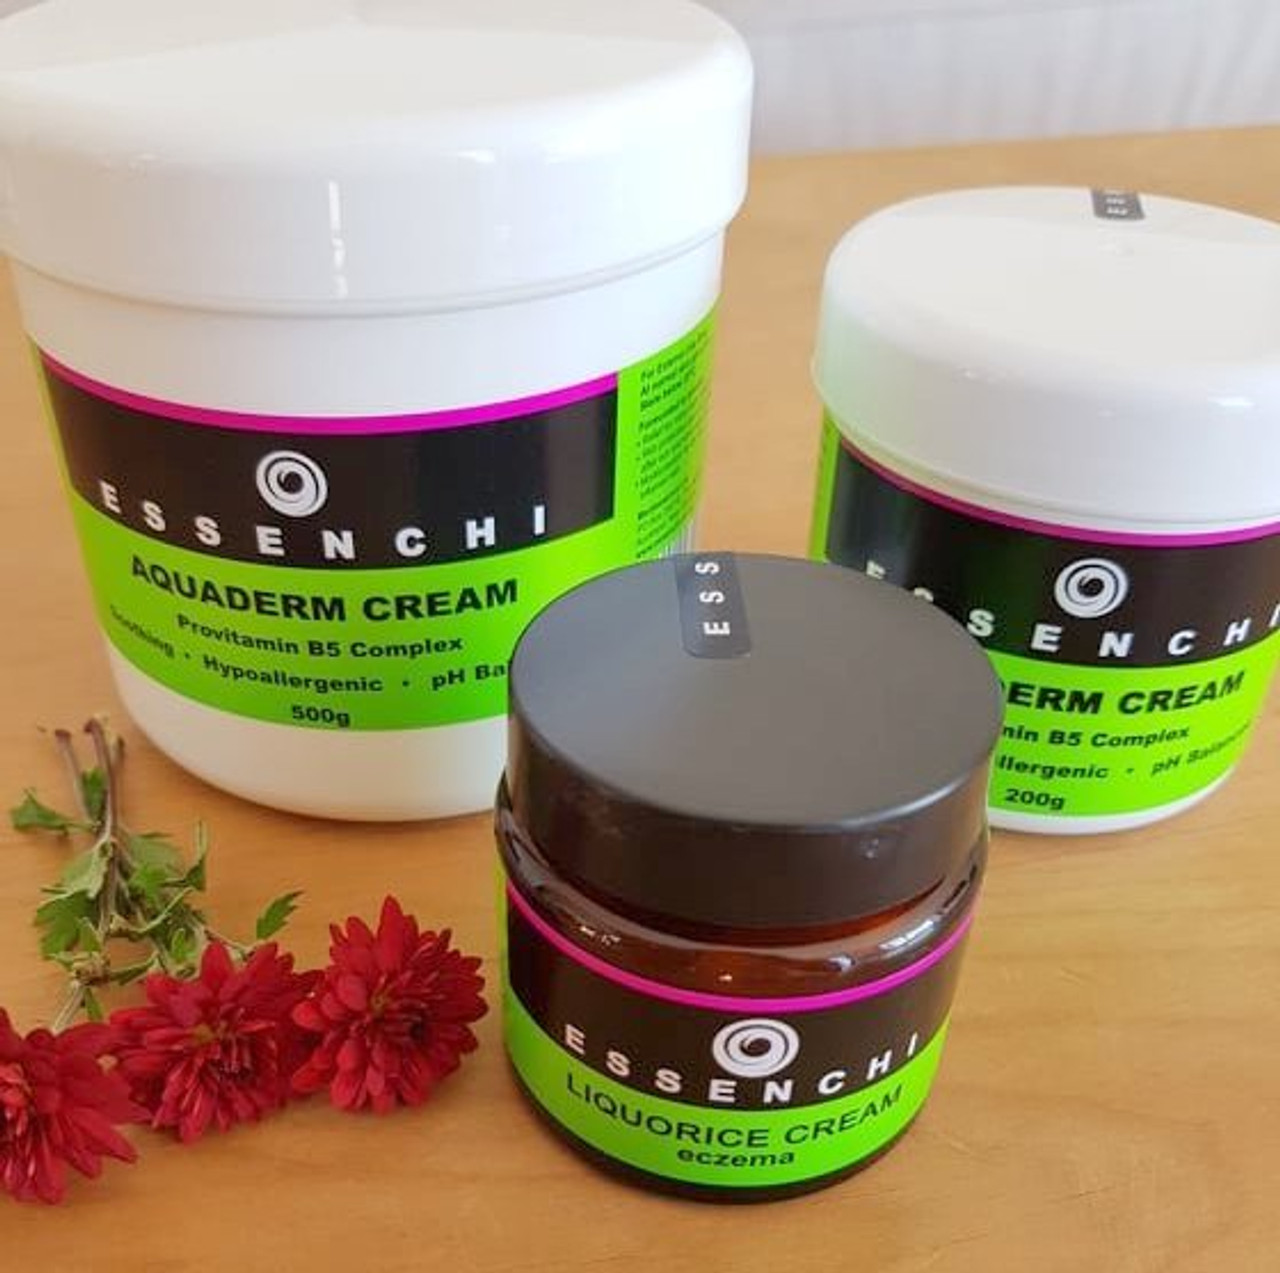 See our other Essenchi cream here https://www.expressthebest.co.nz/essenchi-liquorice-cream-50g/